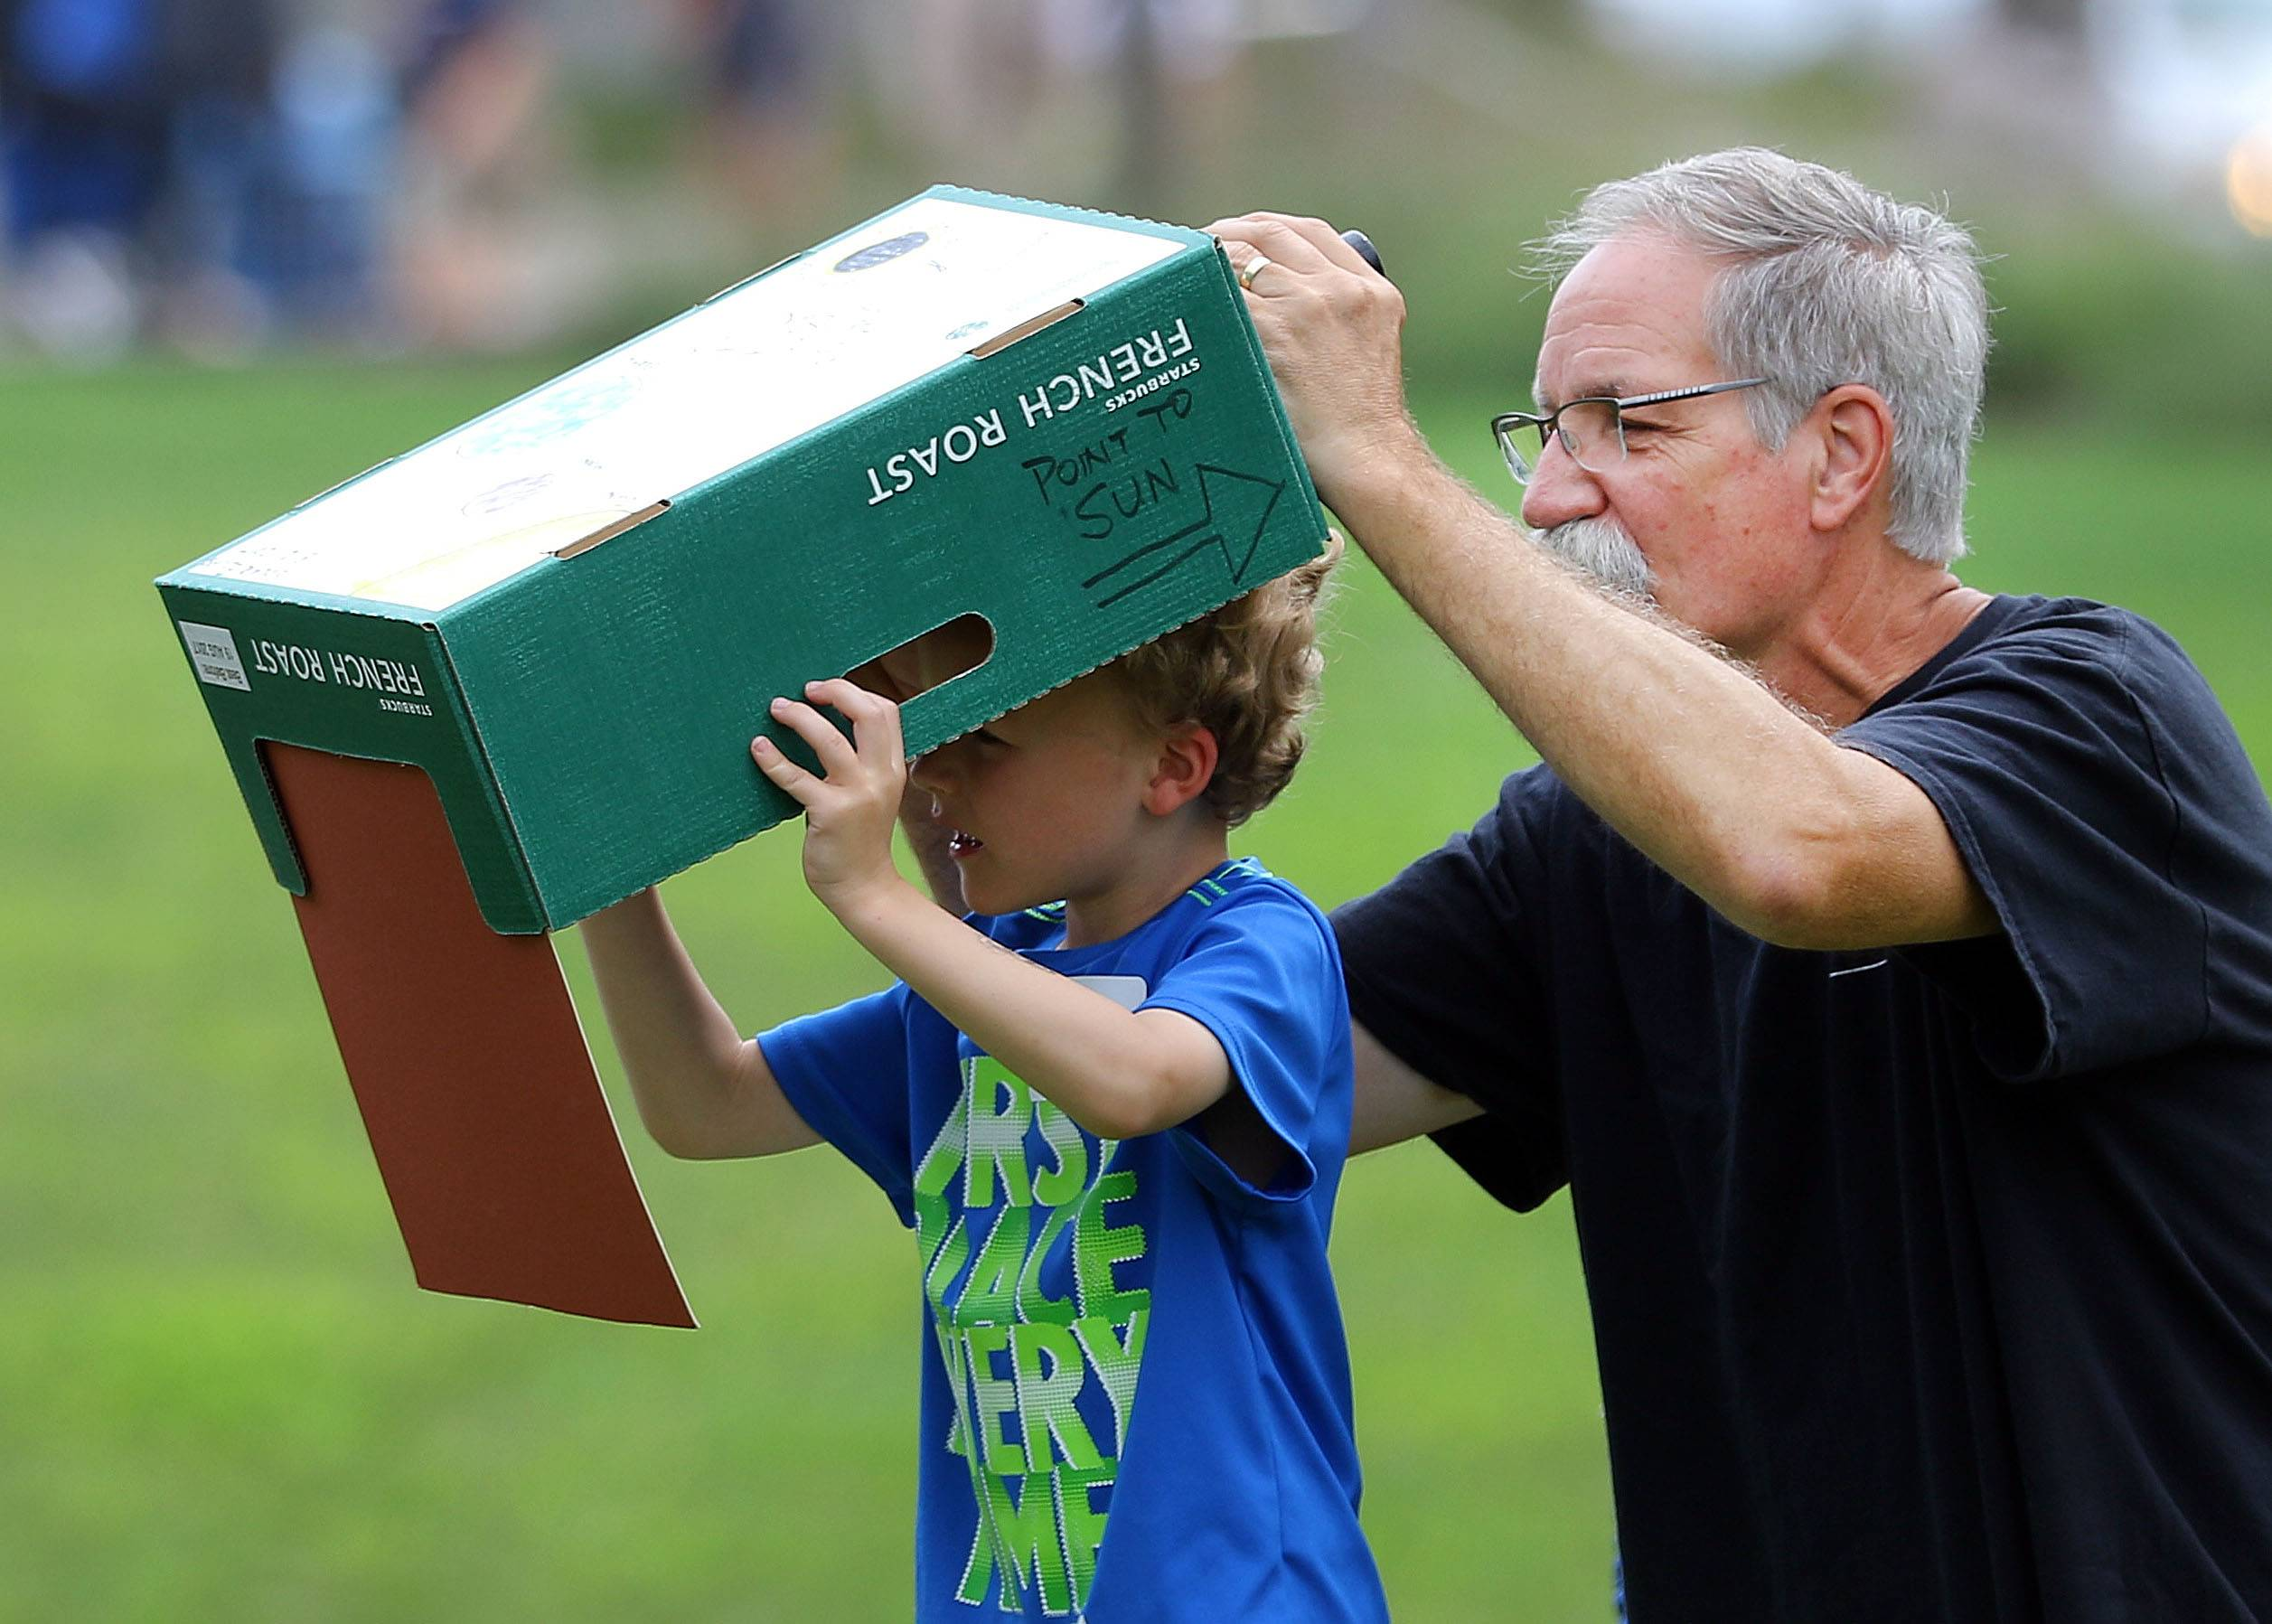 Gary Granzin of Hoffman Estates and his grandson Collin Juracek, 5, of Arlington Heights use a pinhole box to view the eclipse at Harper College.